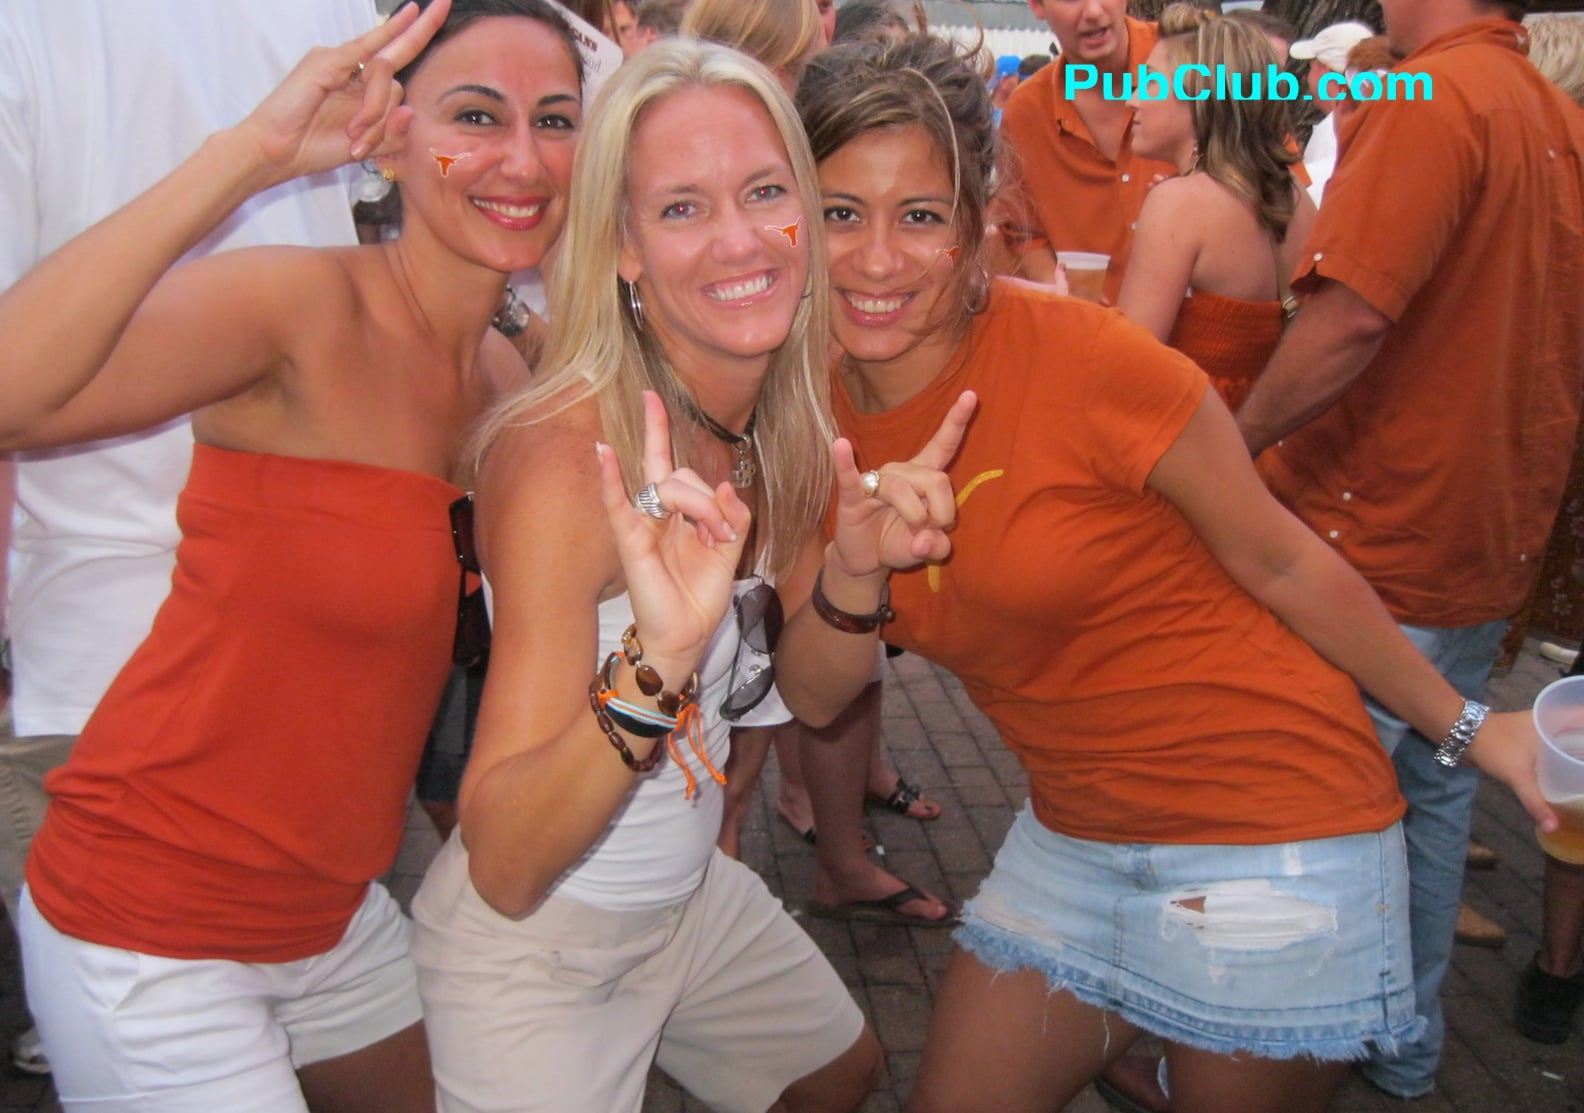 Texas football tailgate party cute girls